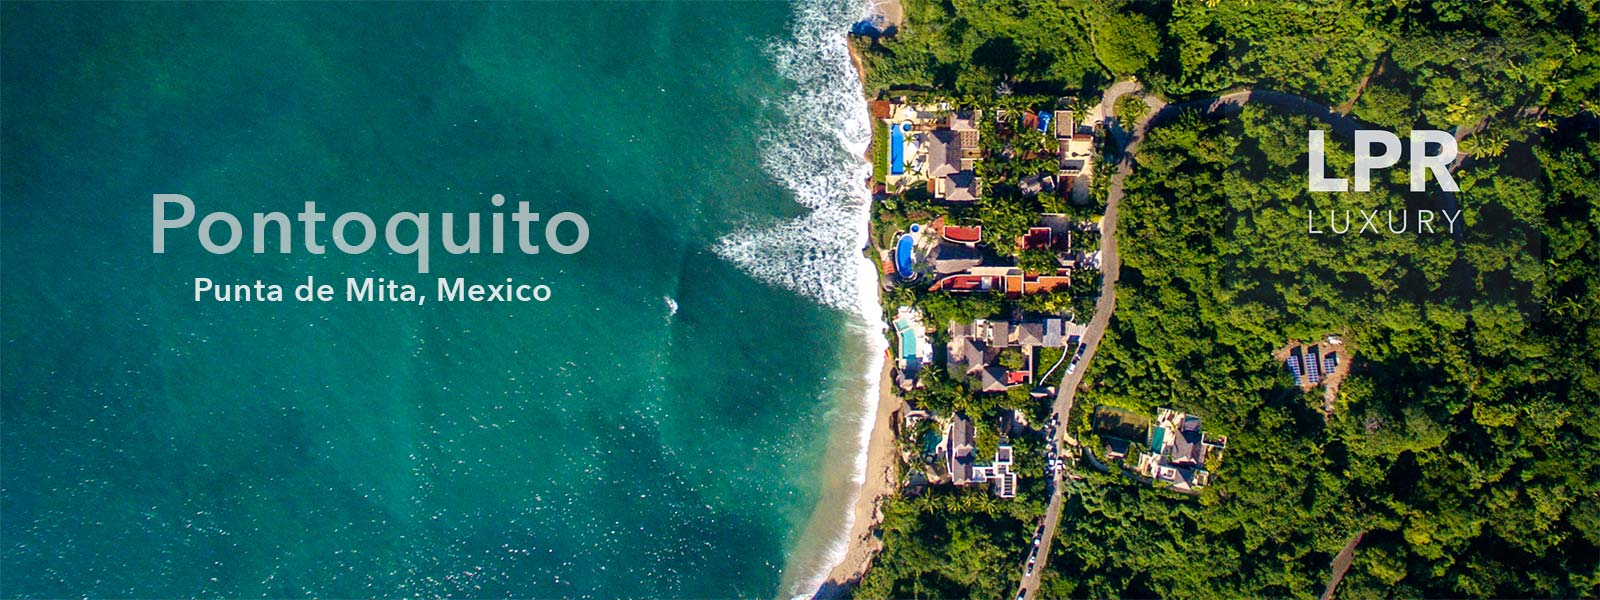 Pontoquito - Luxury Punta de Mita Real Estate and Vacation Rentals